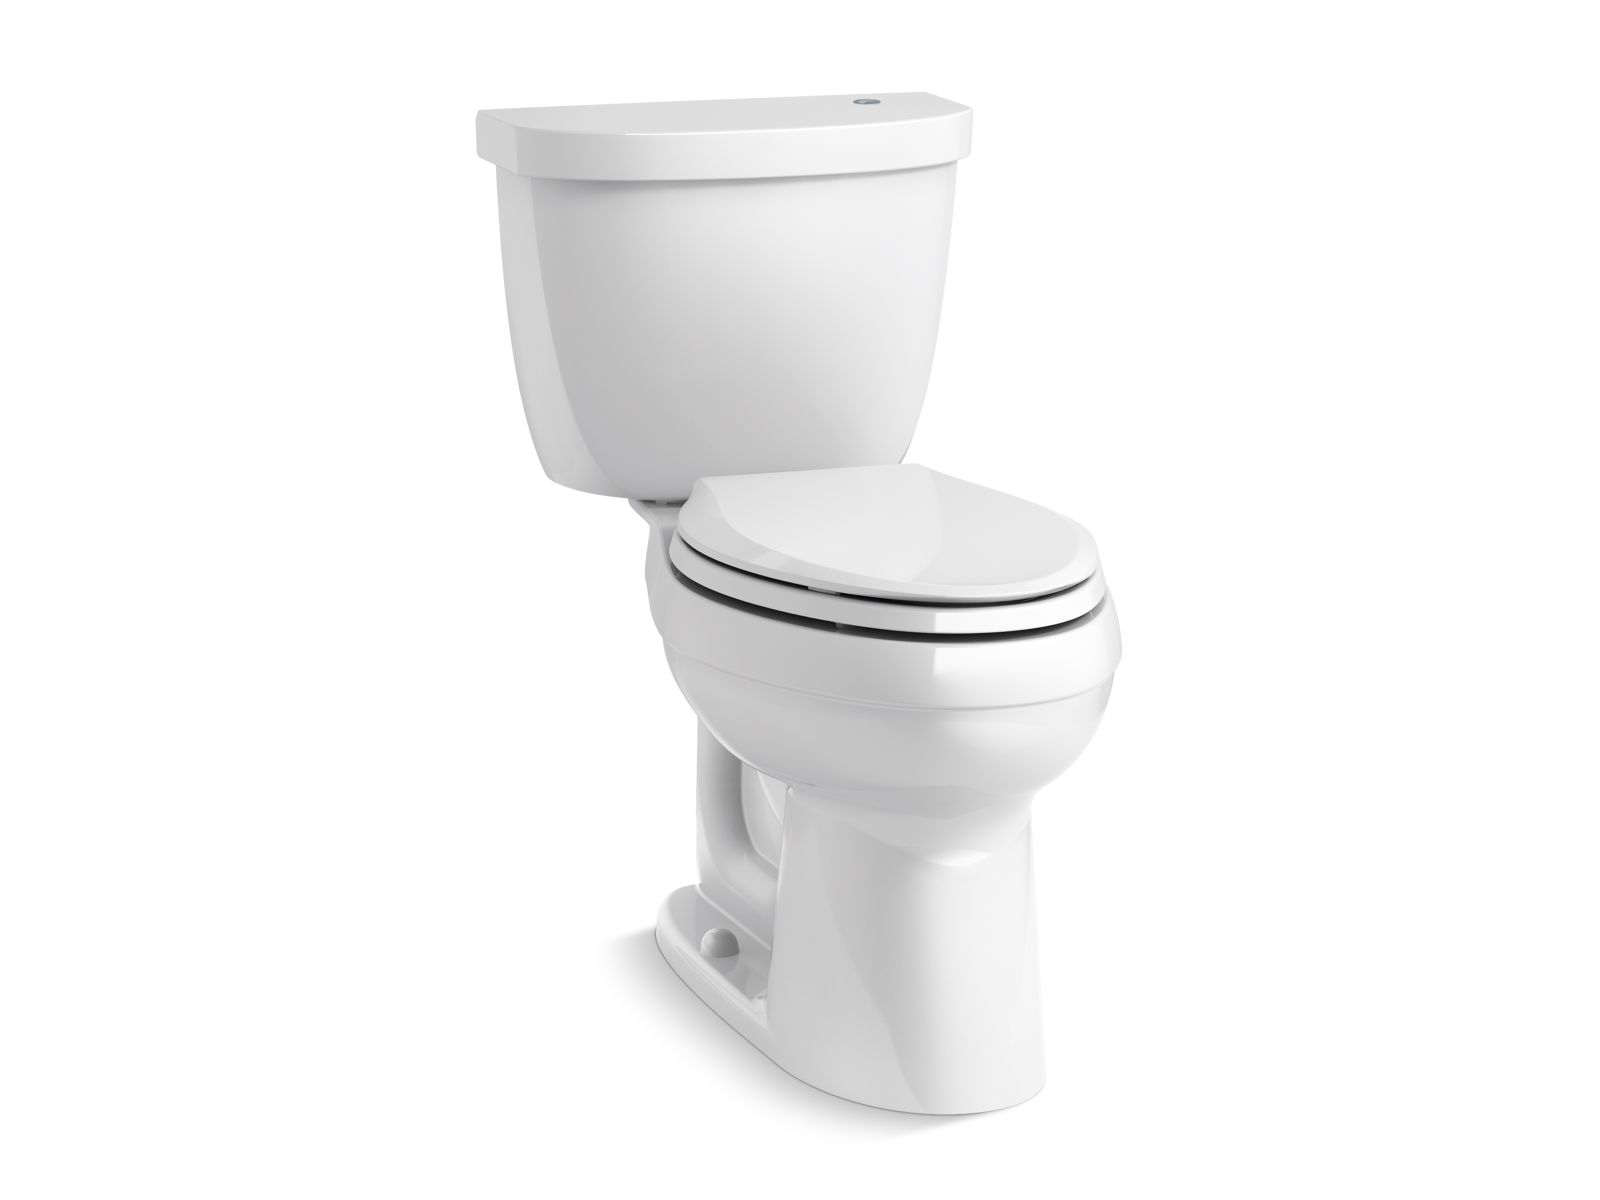 Kohler Cimarron® K-6418-0 Touchless Comfort Height® two-piece elongated 1.28 gpf toilet with AquaPiston® flushing technology White